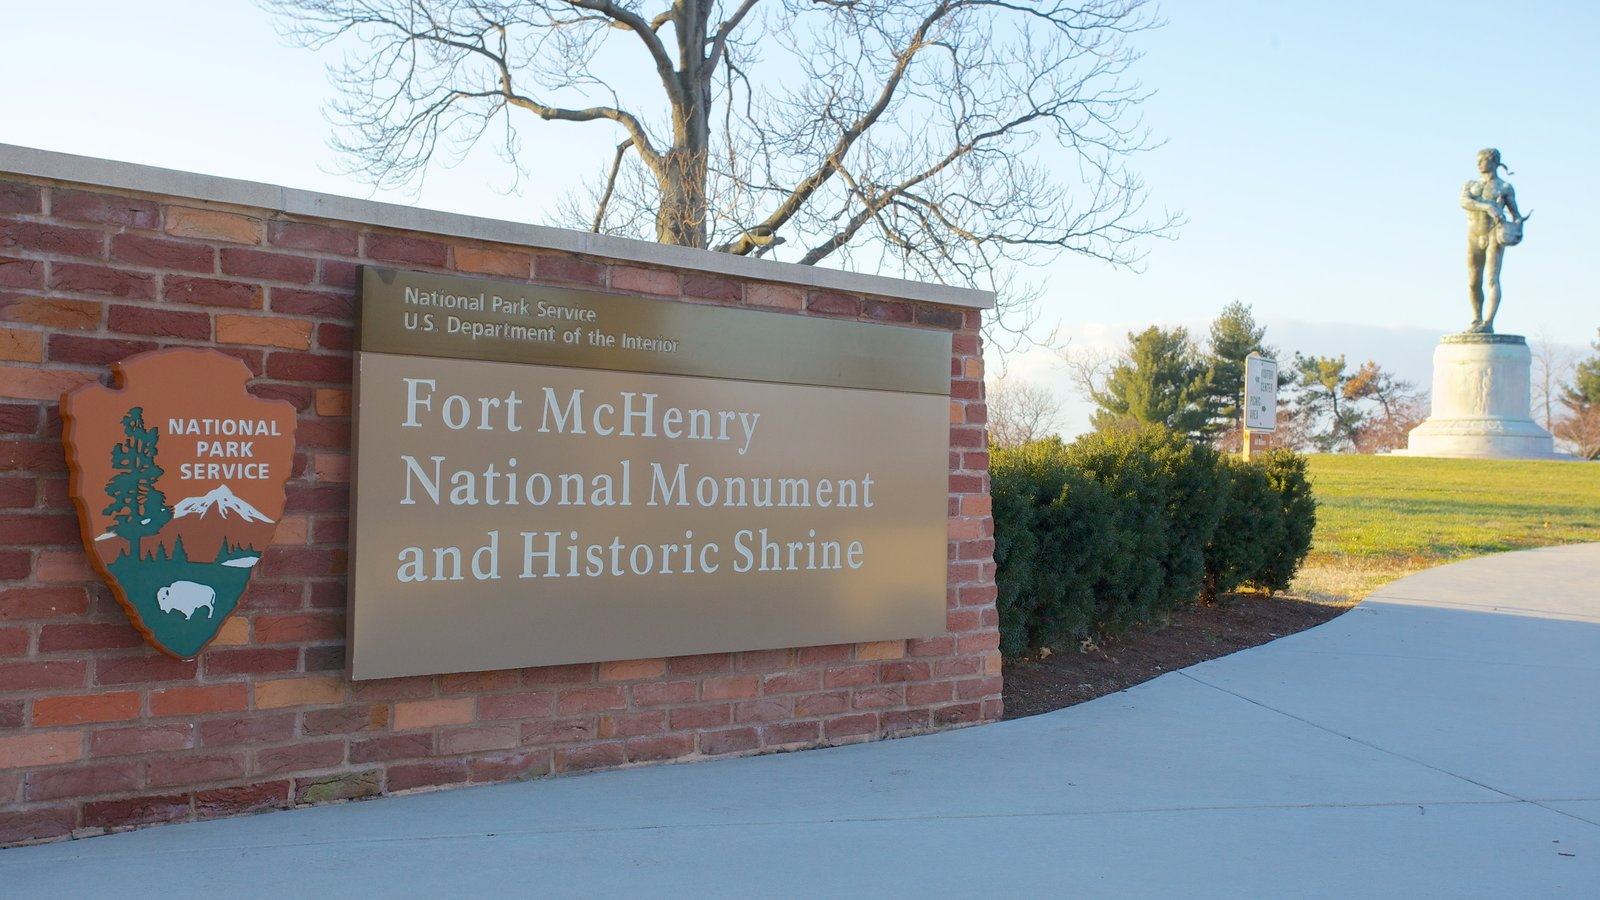 Fort McHenry showing a statue or sculpture, a monument and signage